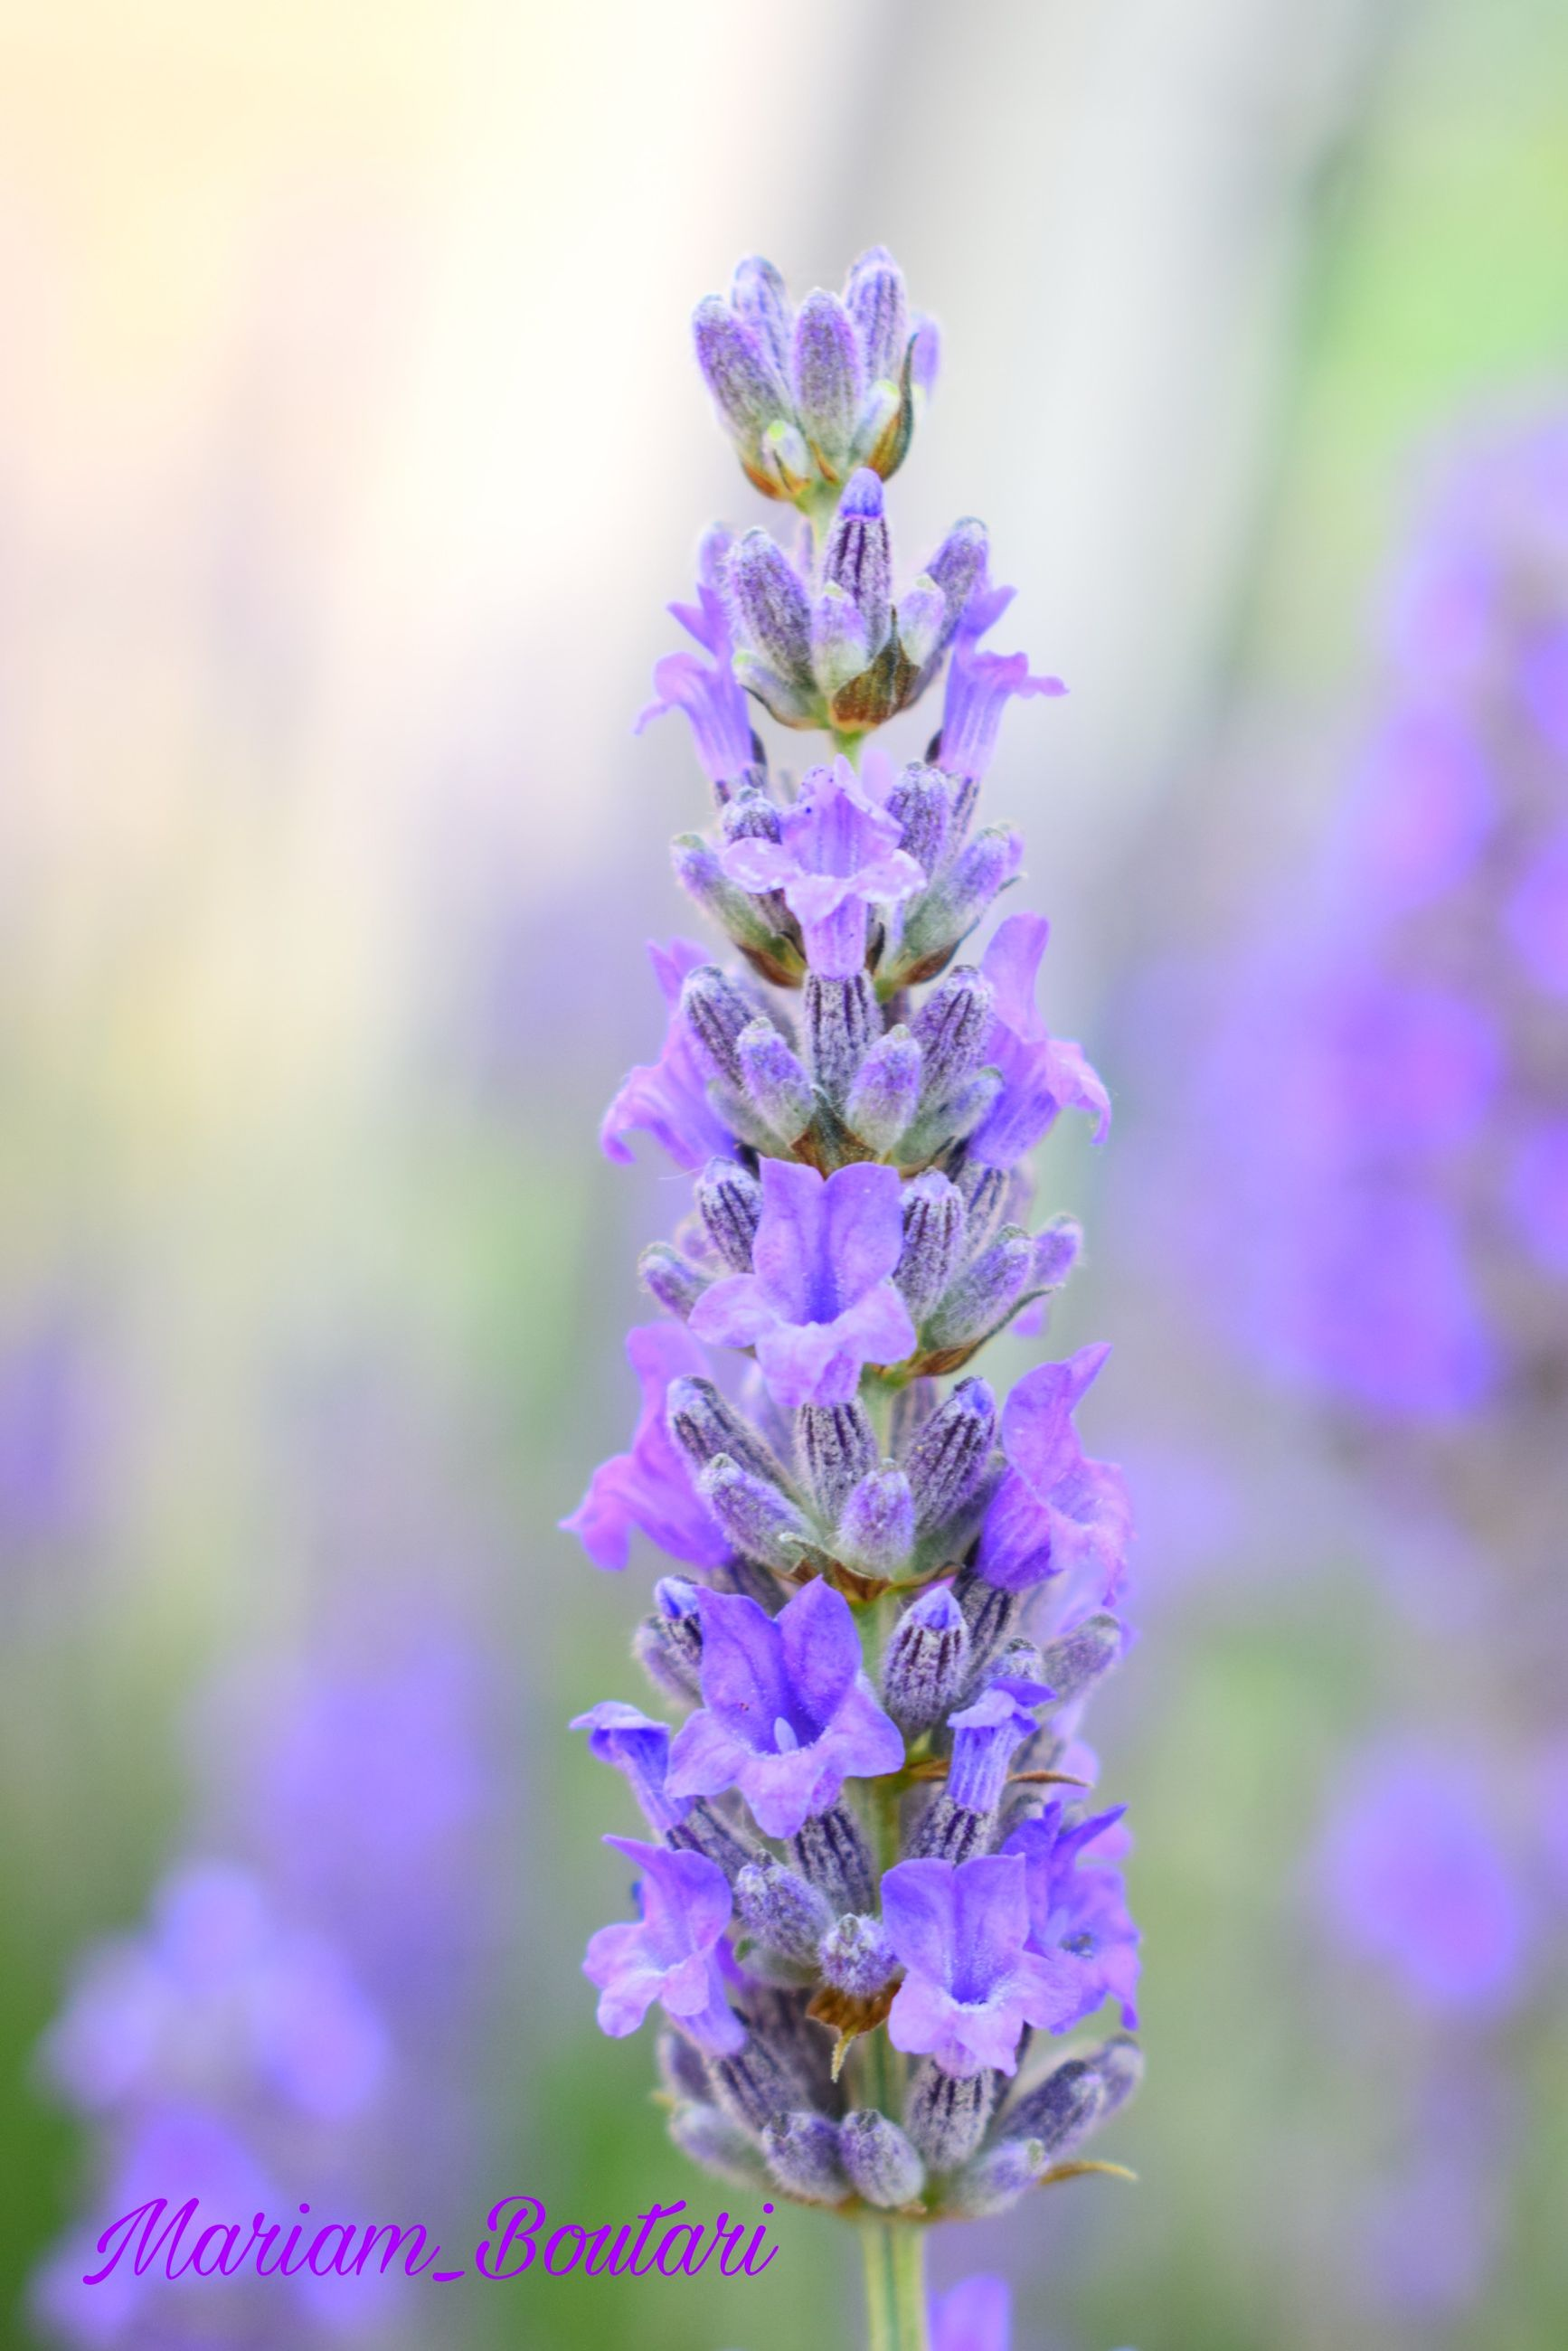 flower, flowering plant, purple, plant, vulnerability, fragility, freshness, beauty in nature, close-up, growth, focus on foreground, petal, nature, no people, day, lavender, flower head, inflorescence, outdoors, botany